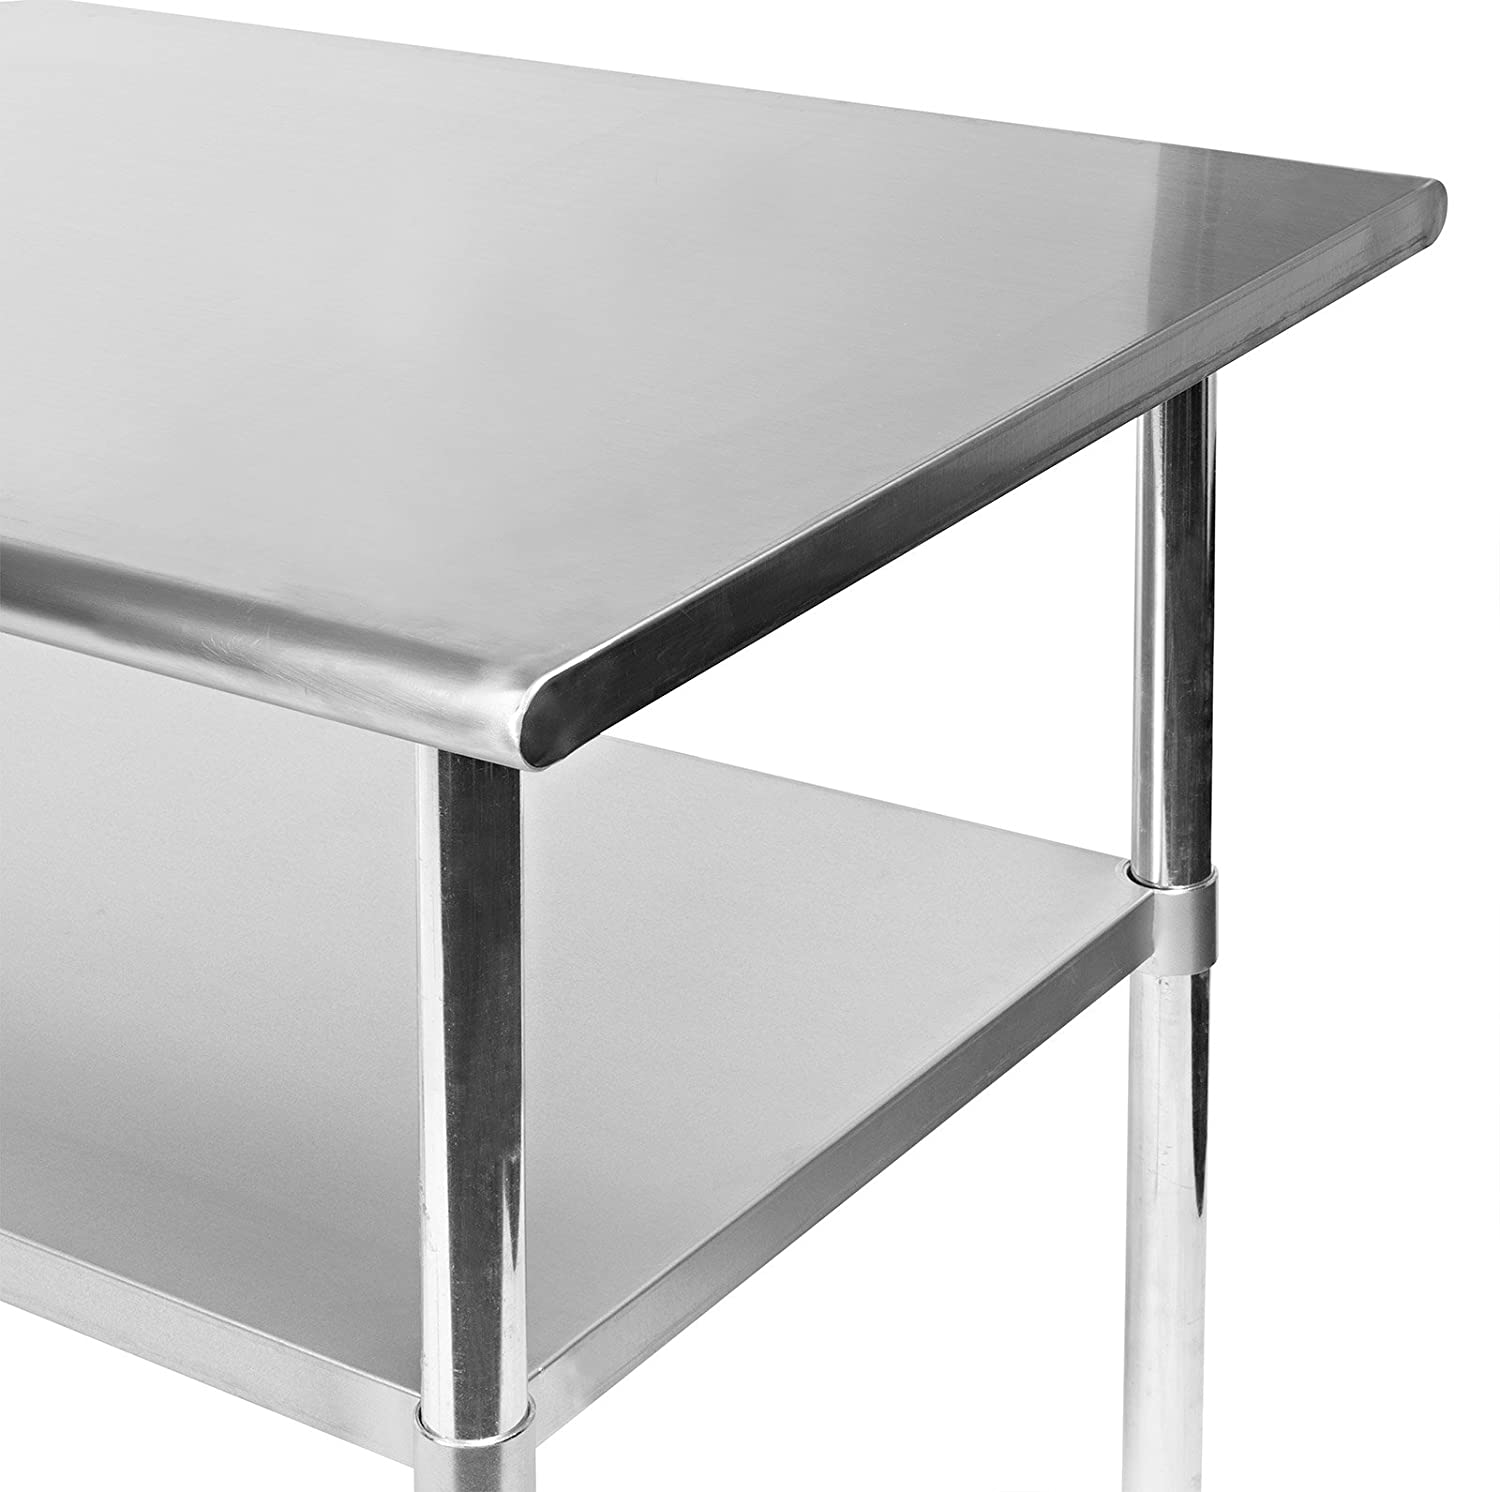 Exceptional Amazon.com: Gridmann NSF Stainless Steel Commercial Kitchen Prep U0026 Work  Table W/ 4 Casters (Wheels)   30 In. X 24 In.: Industrial U0026 Scientific